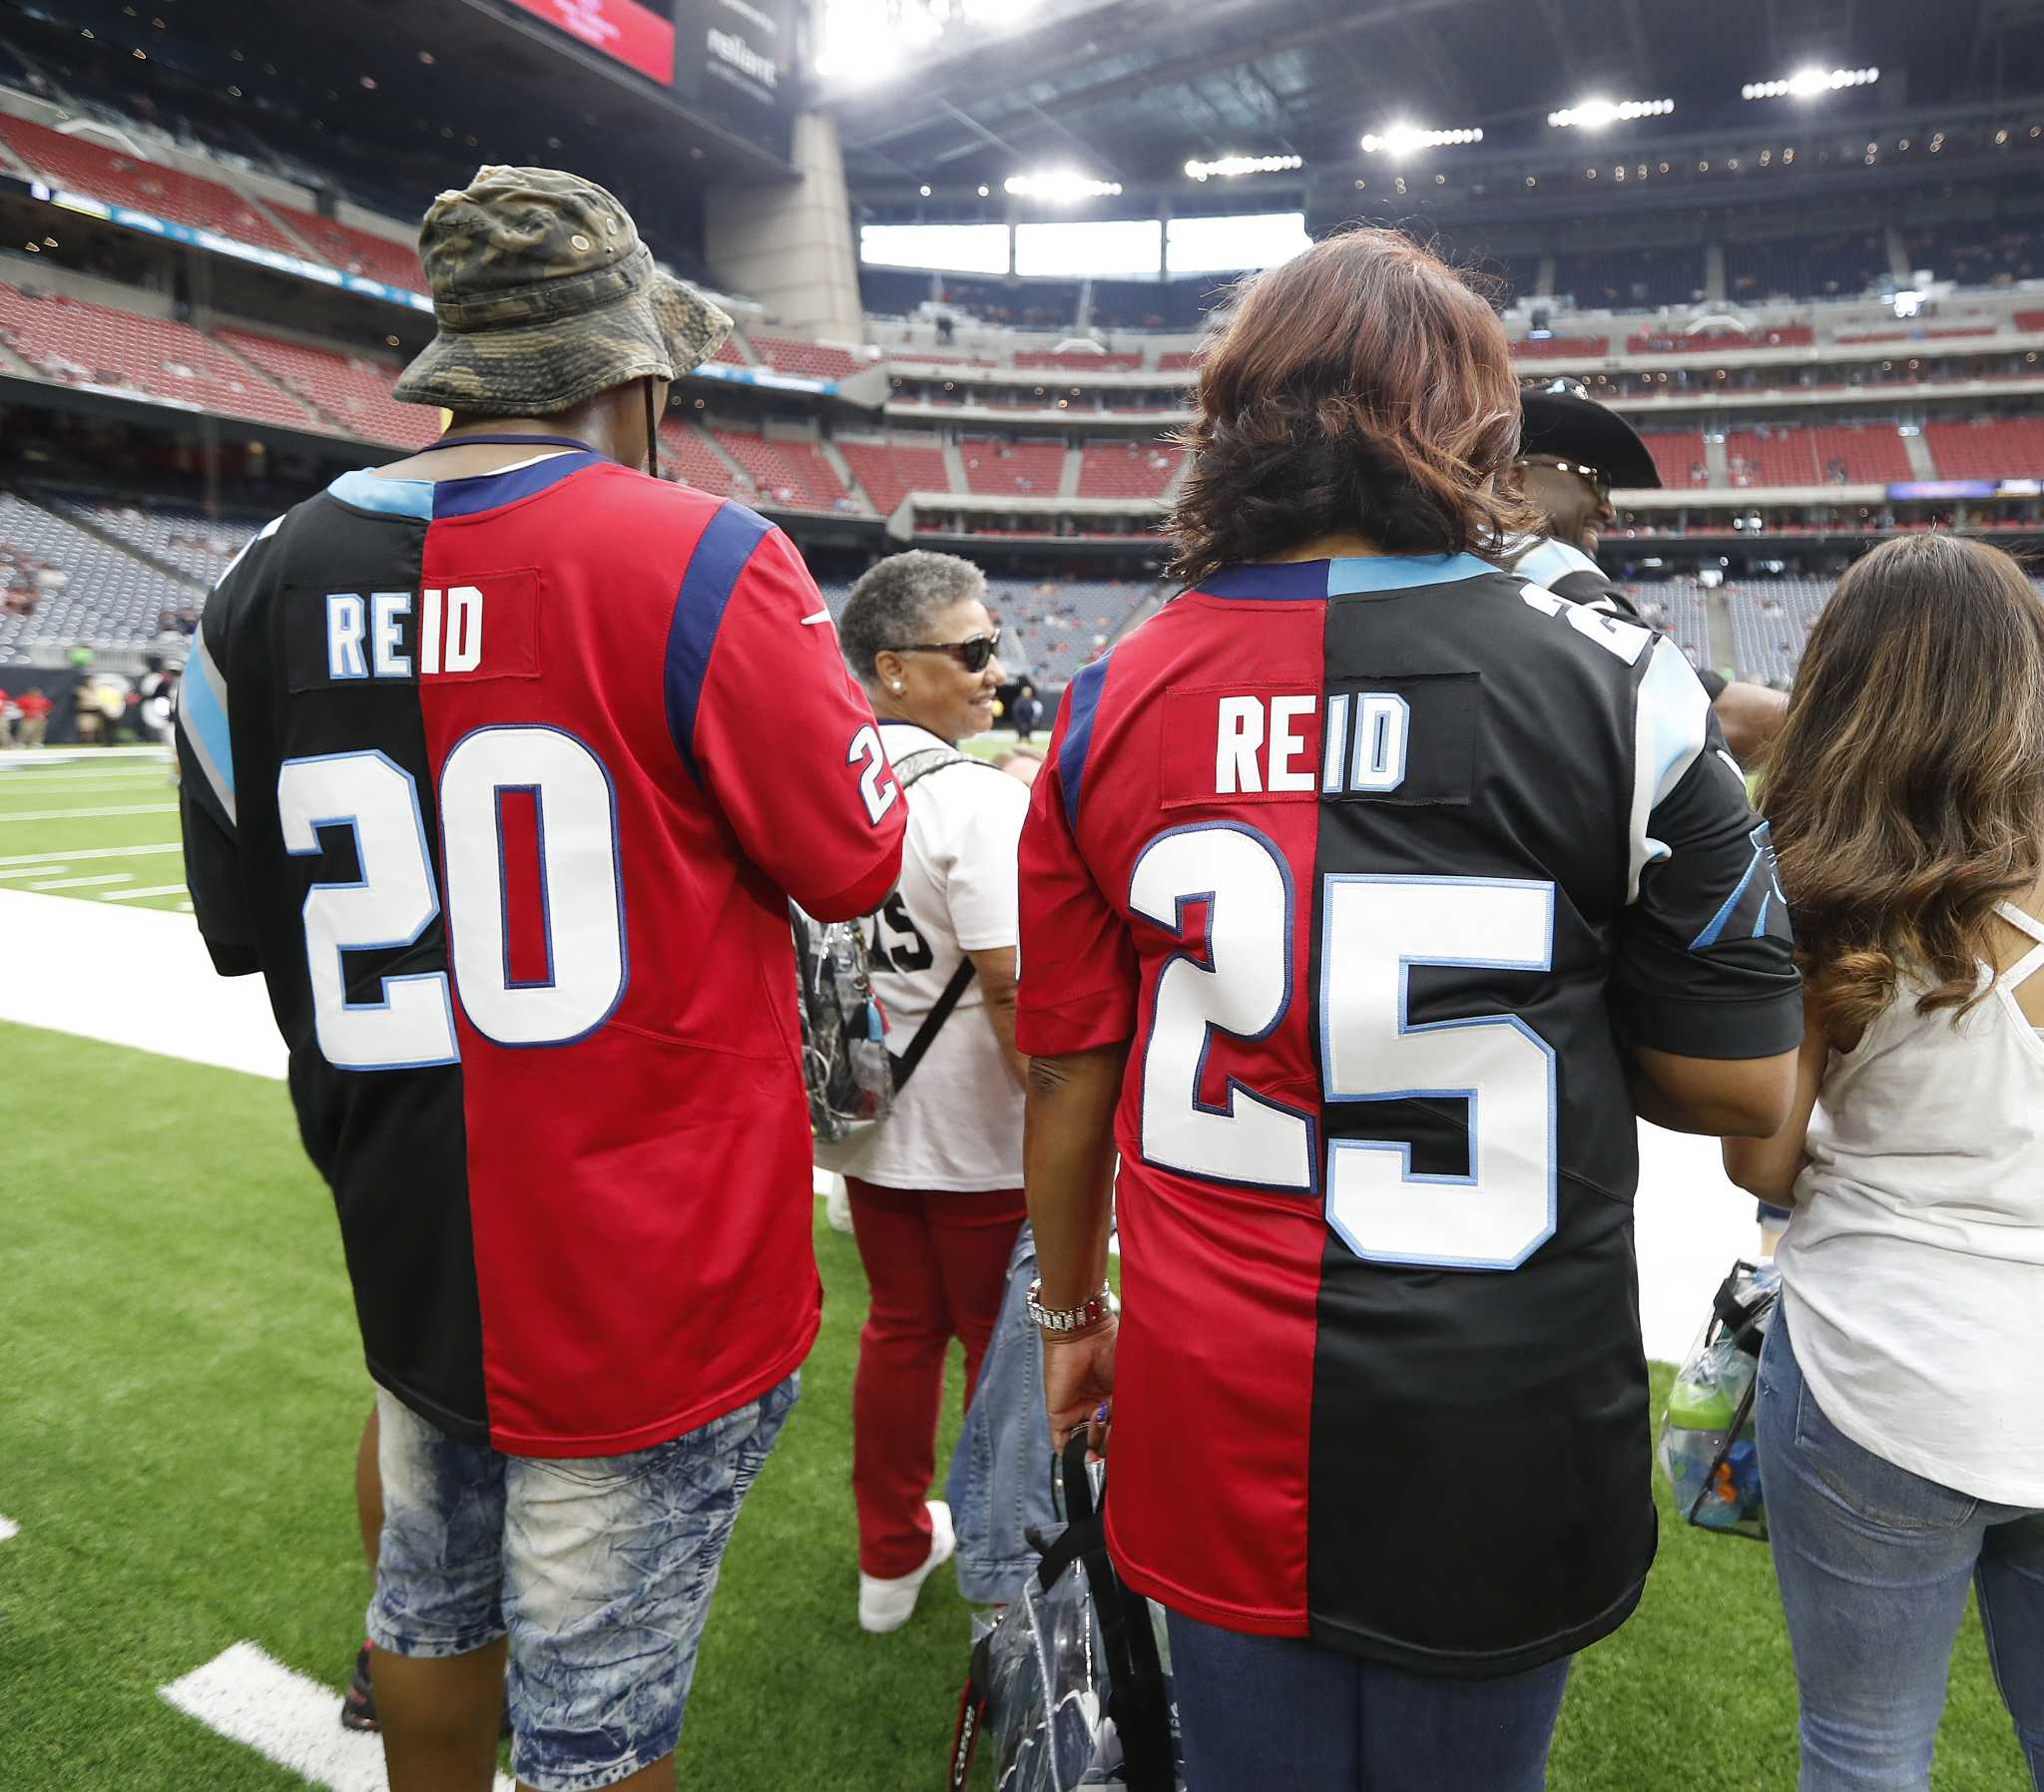 Family of Justin, Eric Reid split allegiances at Texans-Panthers game